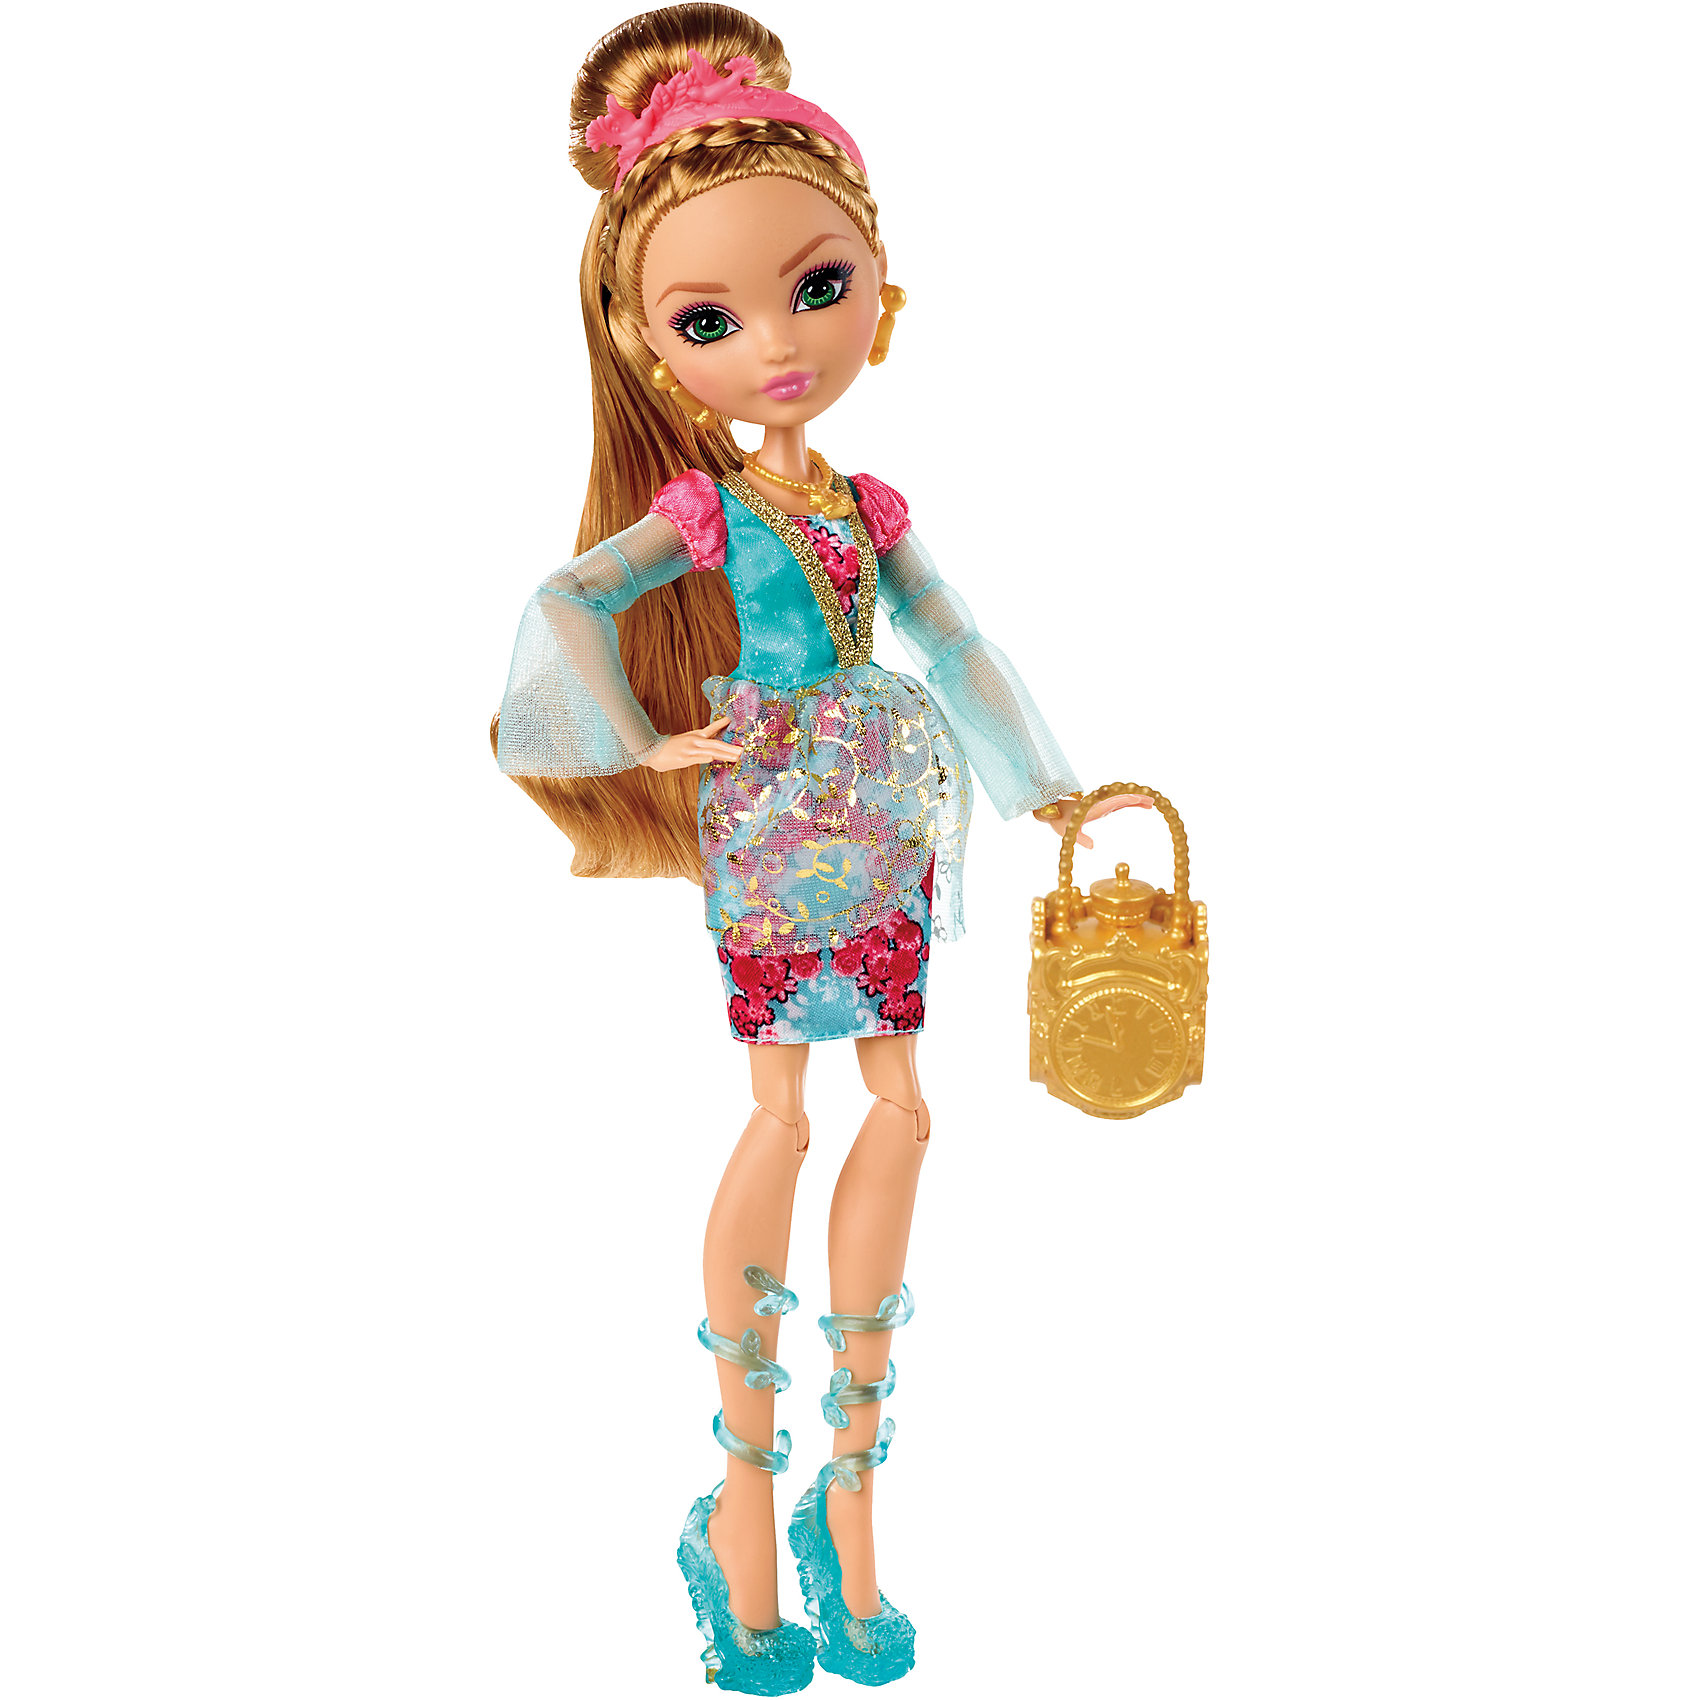 Mattel Кукла Эшлин Элл Главные герои, Ever After High mattel mattel кукла ever after high наследники и отступники банни бланк